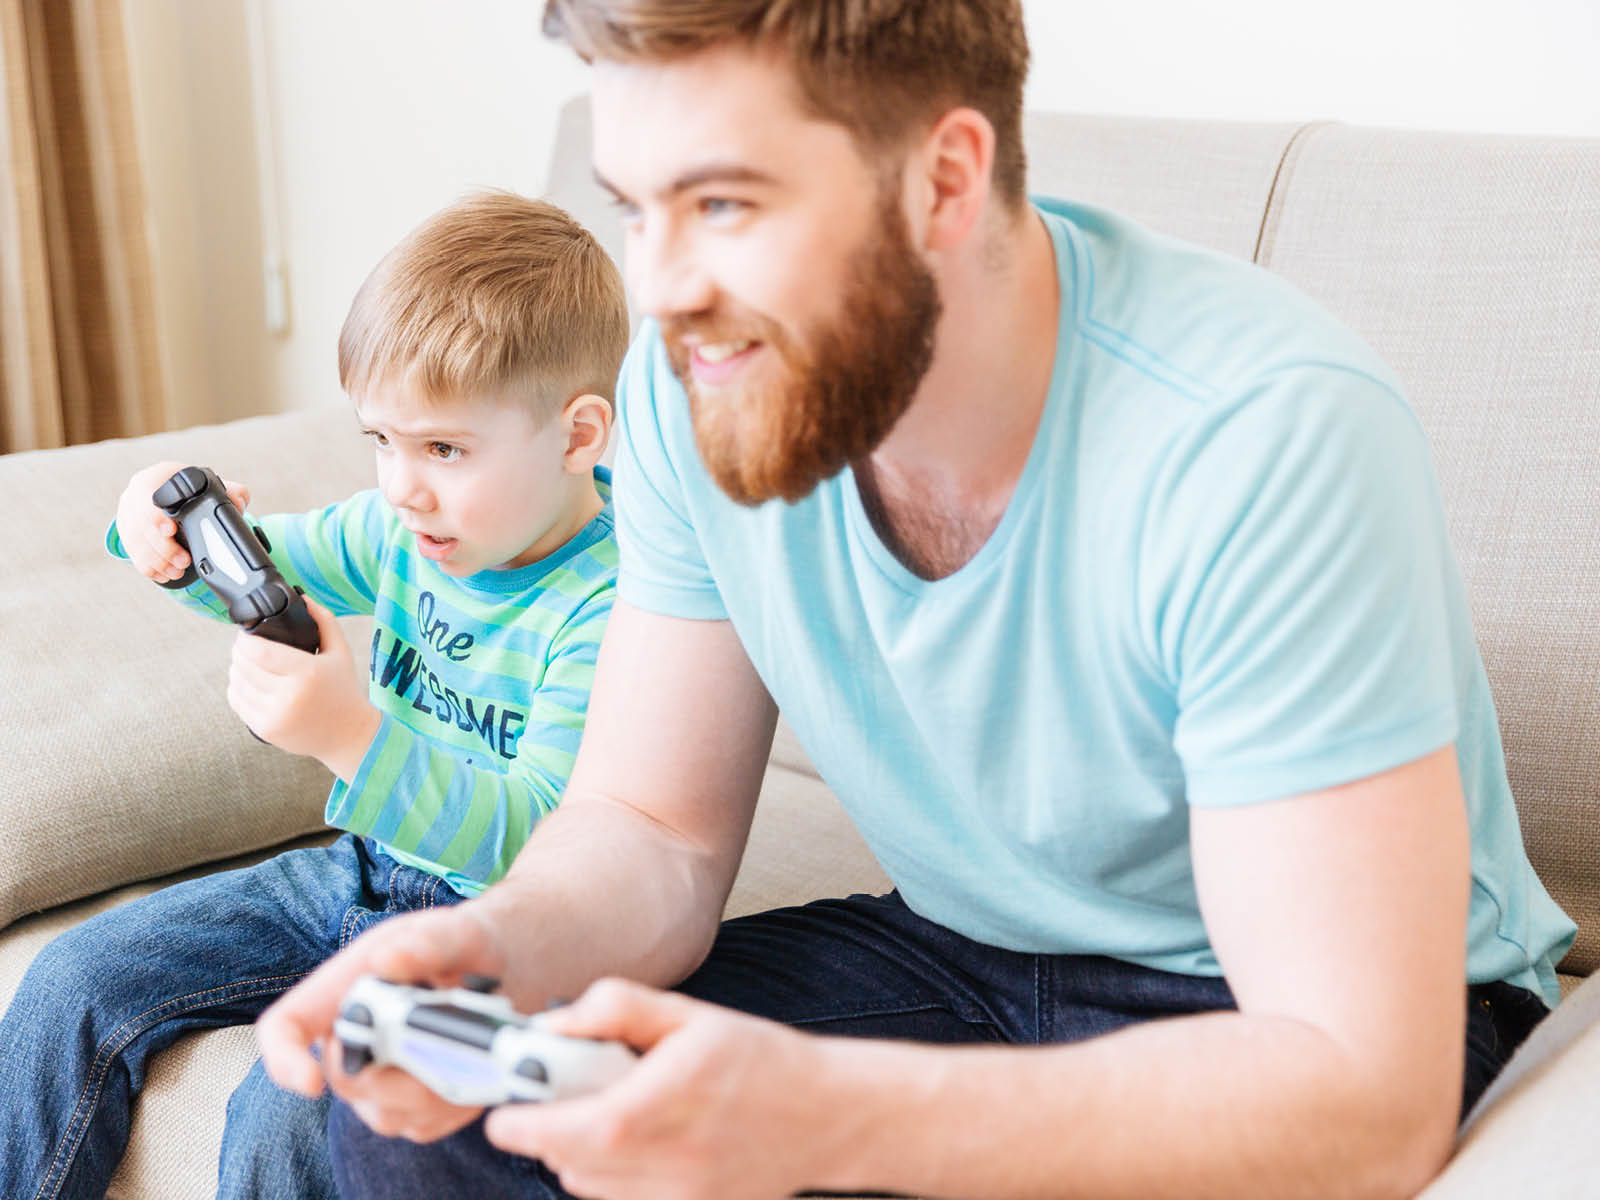 dad and son play some videogames at home